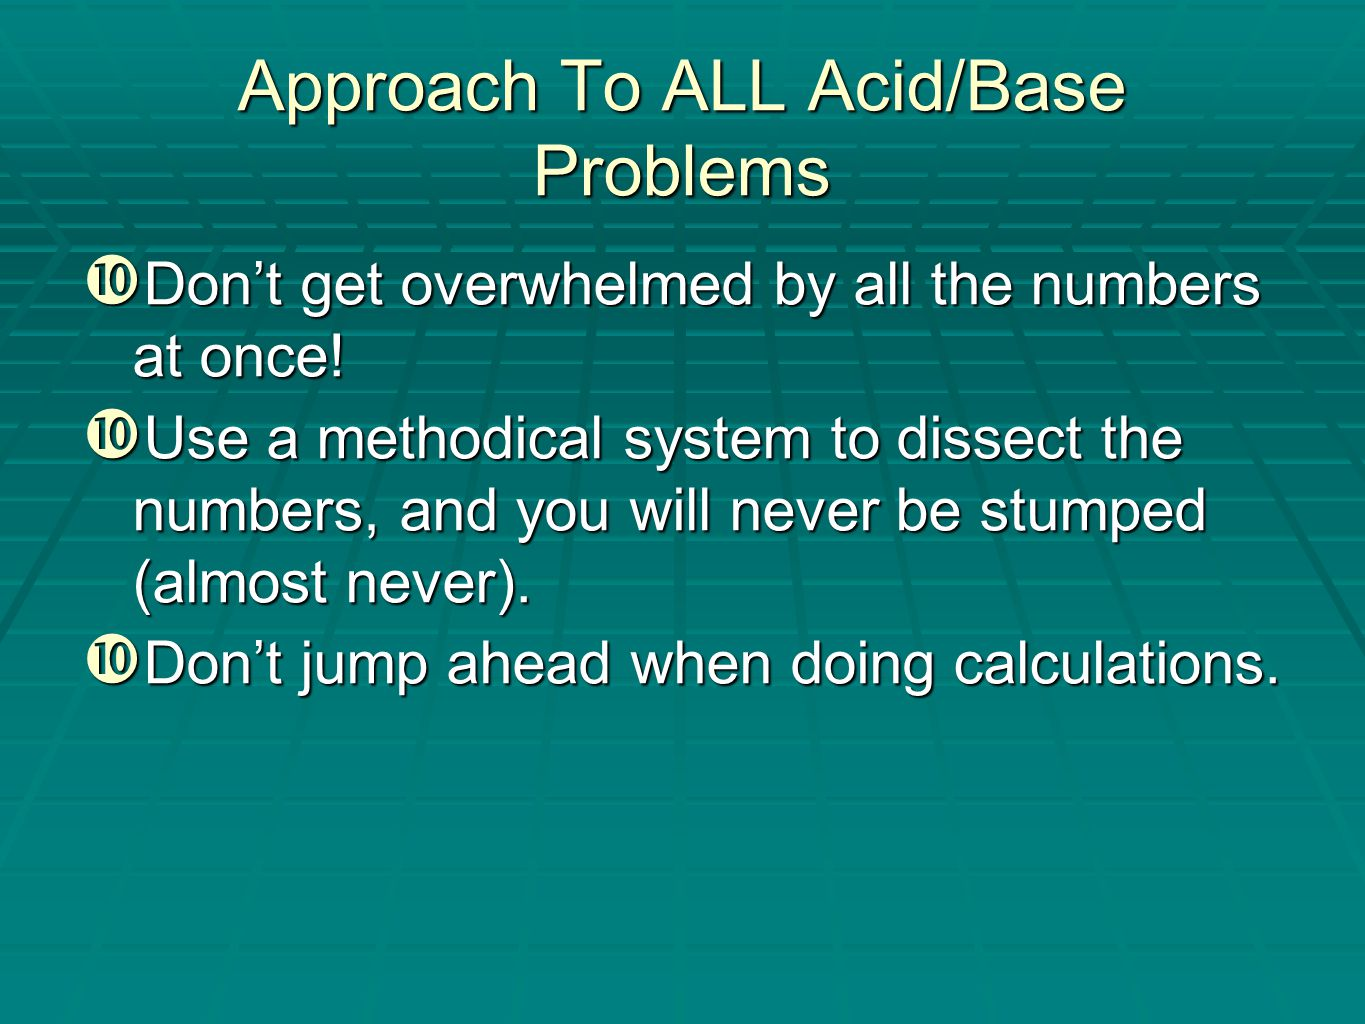 Approach To ALL Acid/Base Problems